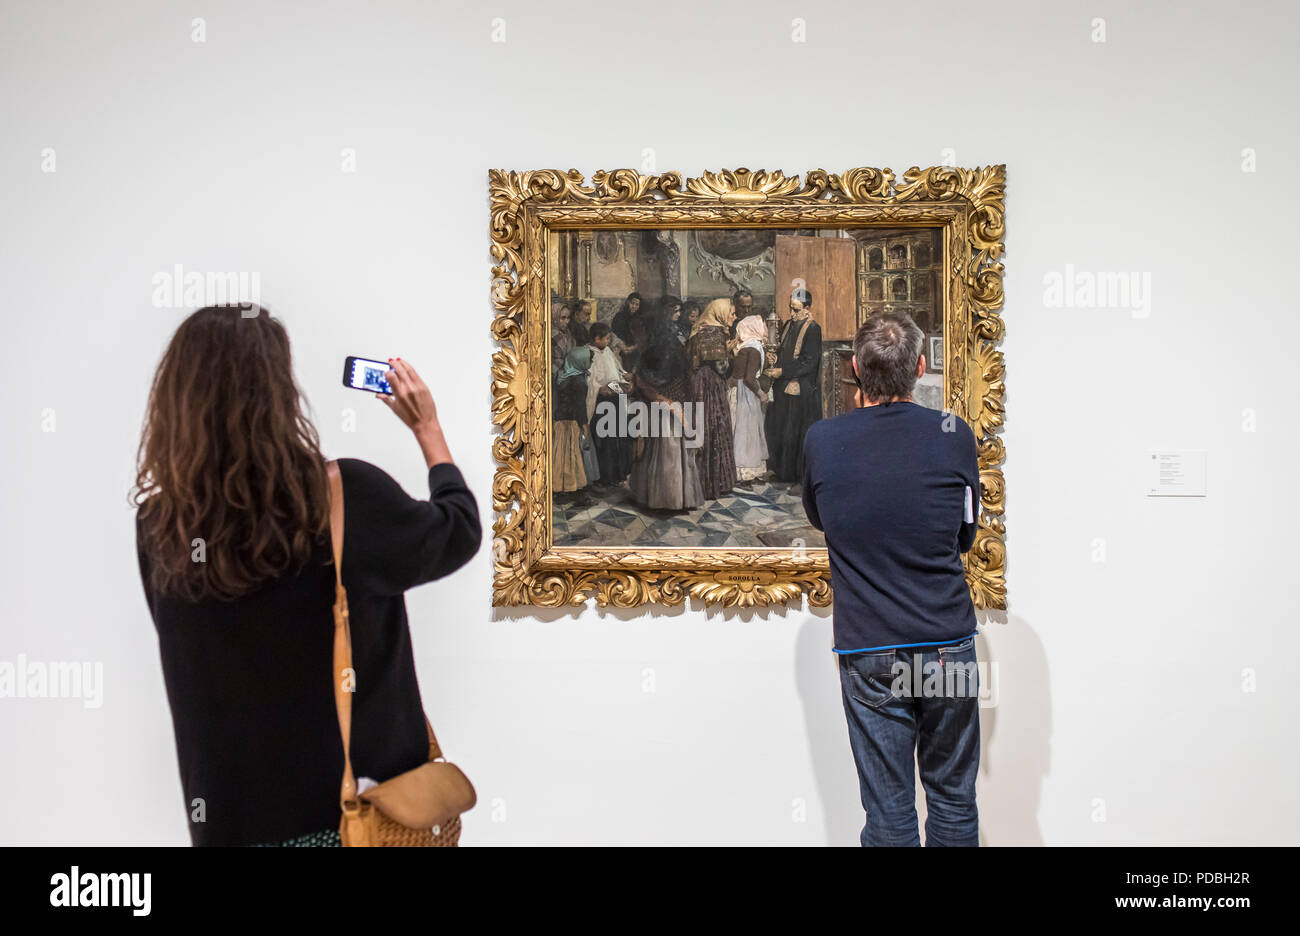 El Beso De La Reliquia By Joaquin Sorolla Museo De Bellas Artes Or Fine Arts Museum Bilbao Spain Stock Photo Alamy